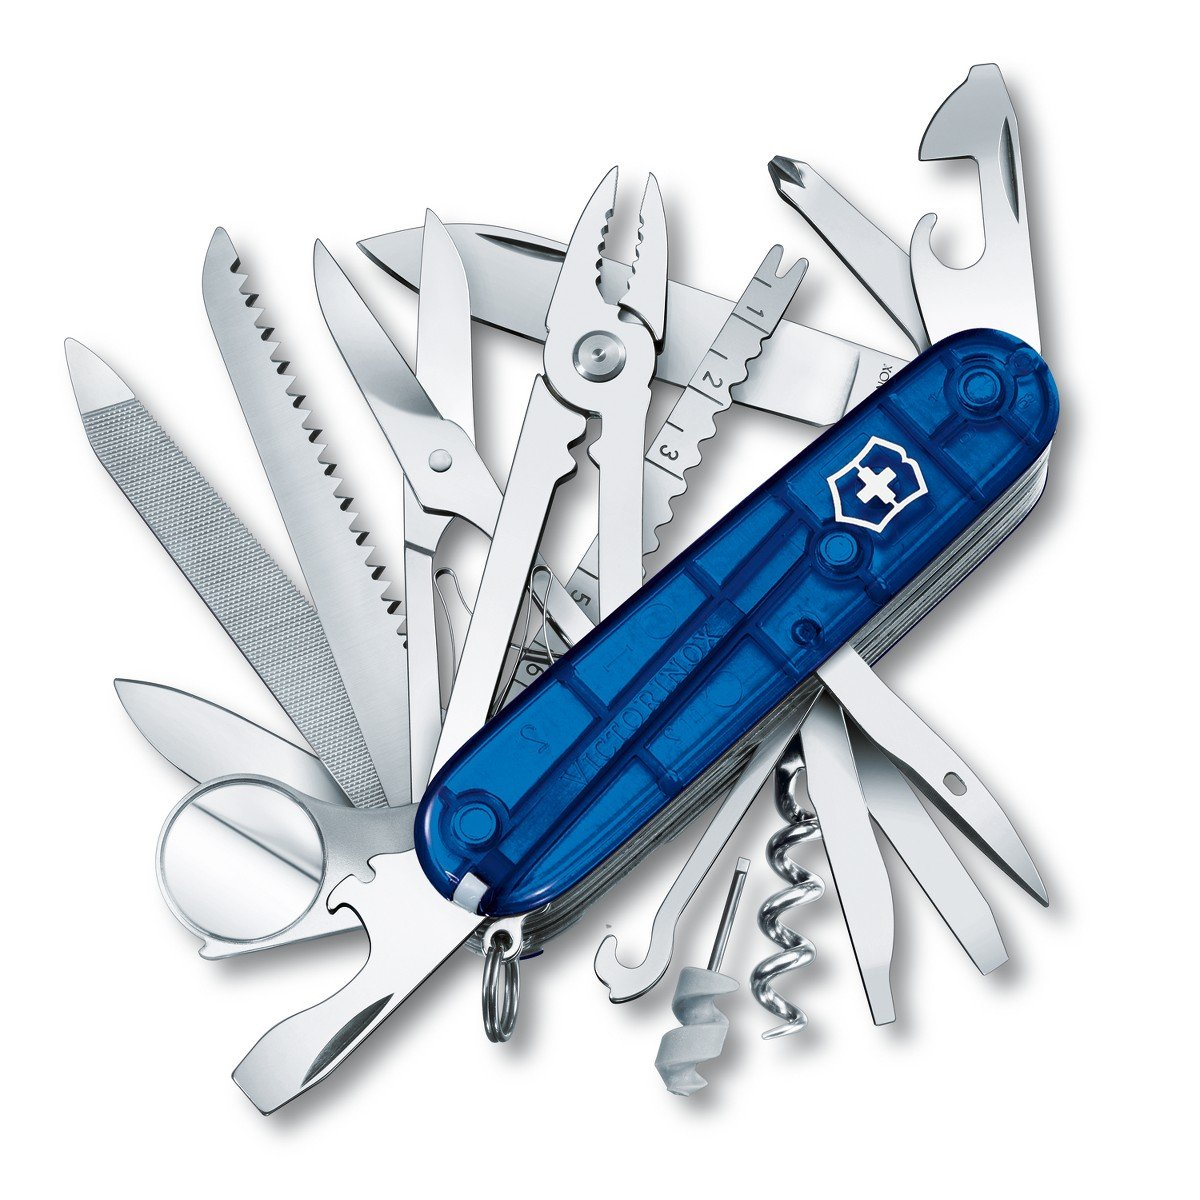 Victorinox Swiss Army Multi-Tool, SwissChamp Pocket Knife, Sapphire